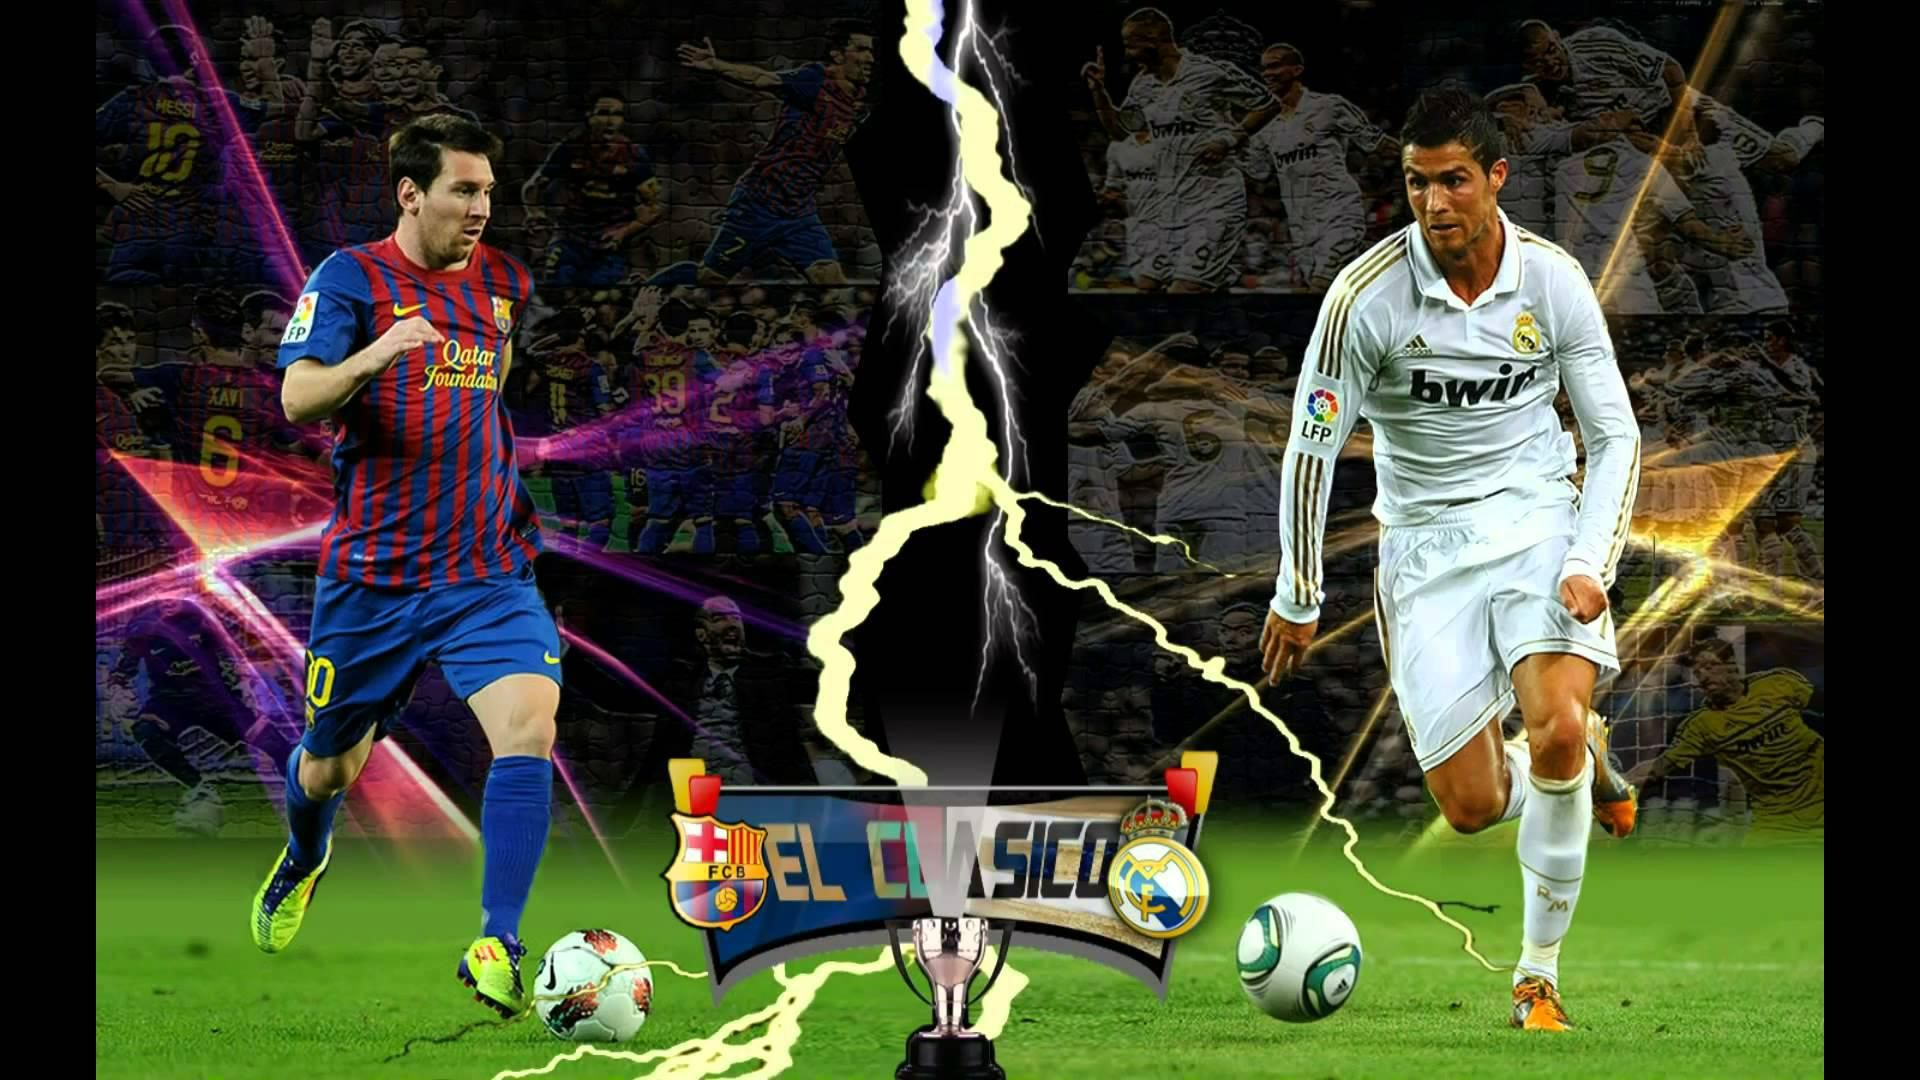 Cristiano Ronaldo Vs Lionel Messi 2015 Wallpapers - Wallpaper Cave